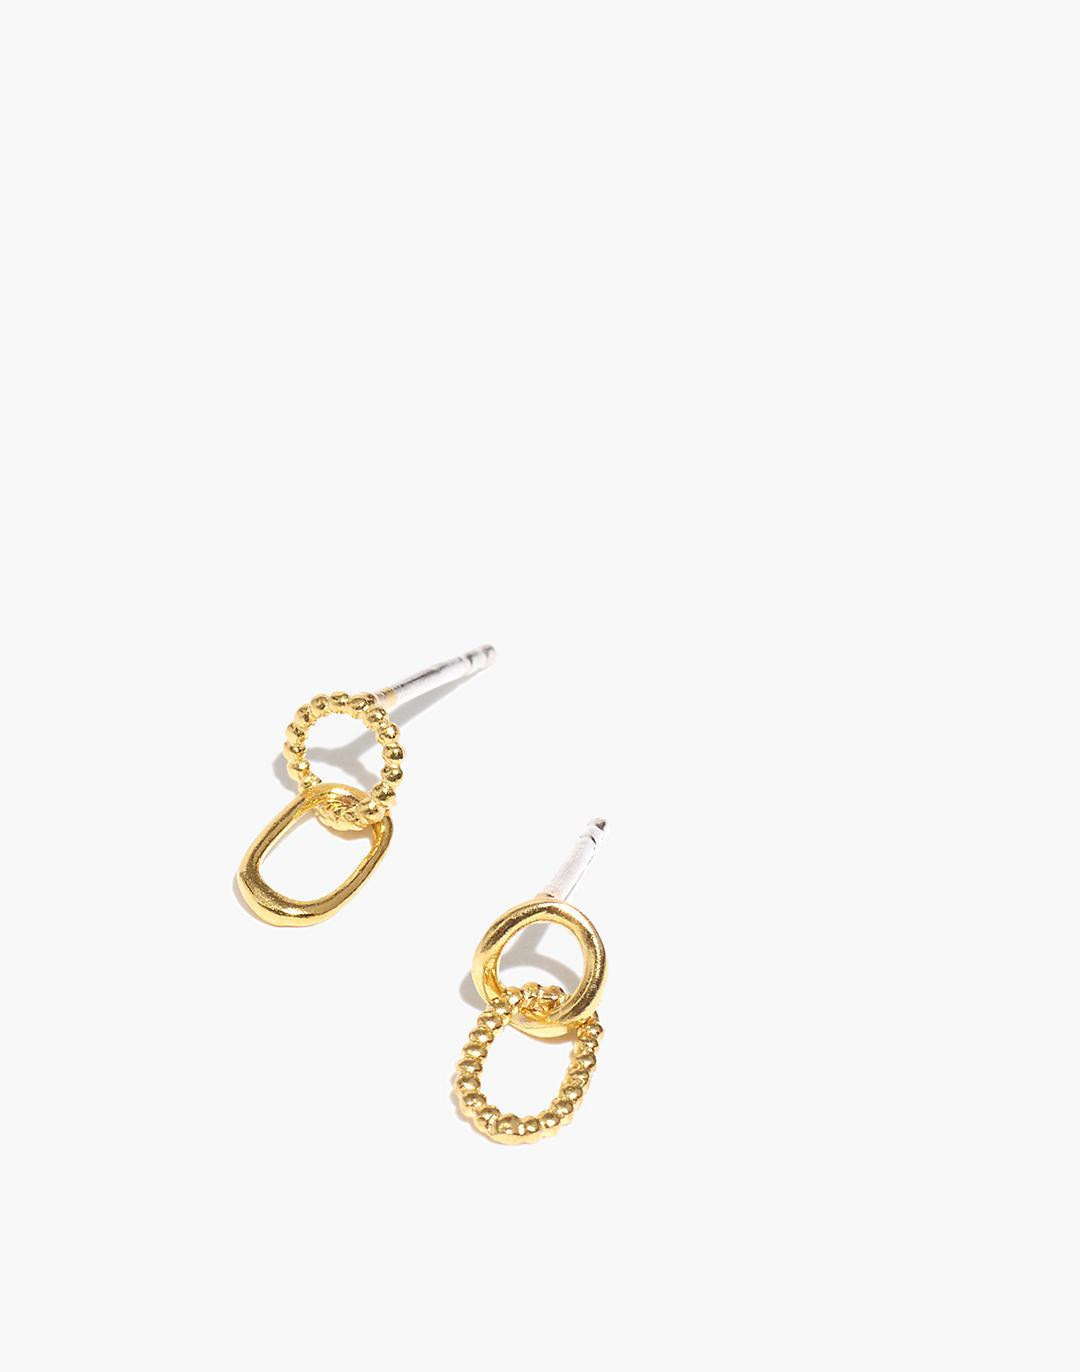 Delicate Collection Demi-Fine Bonded Pair Earrings